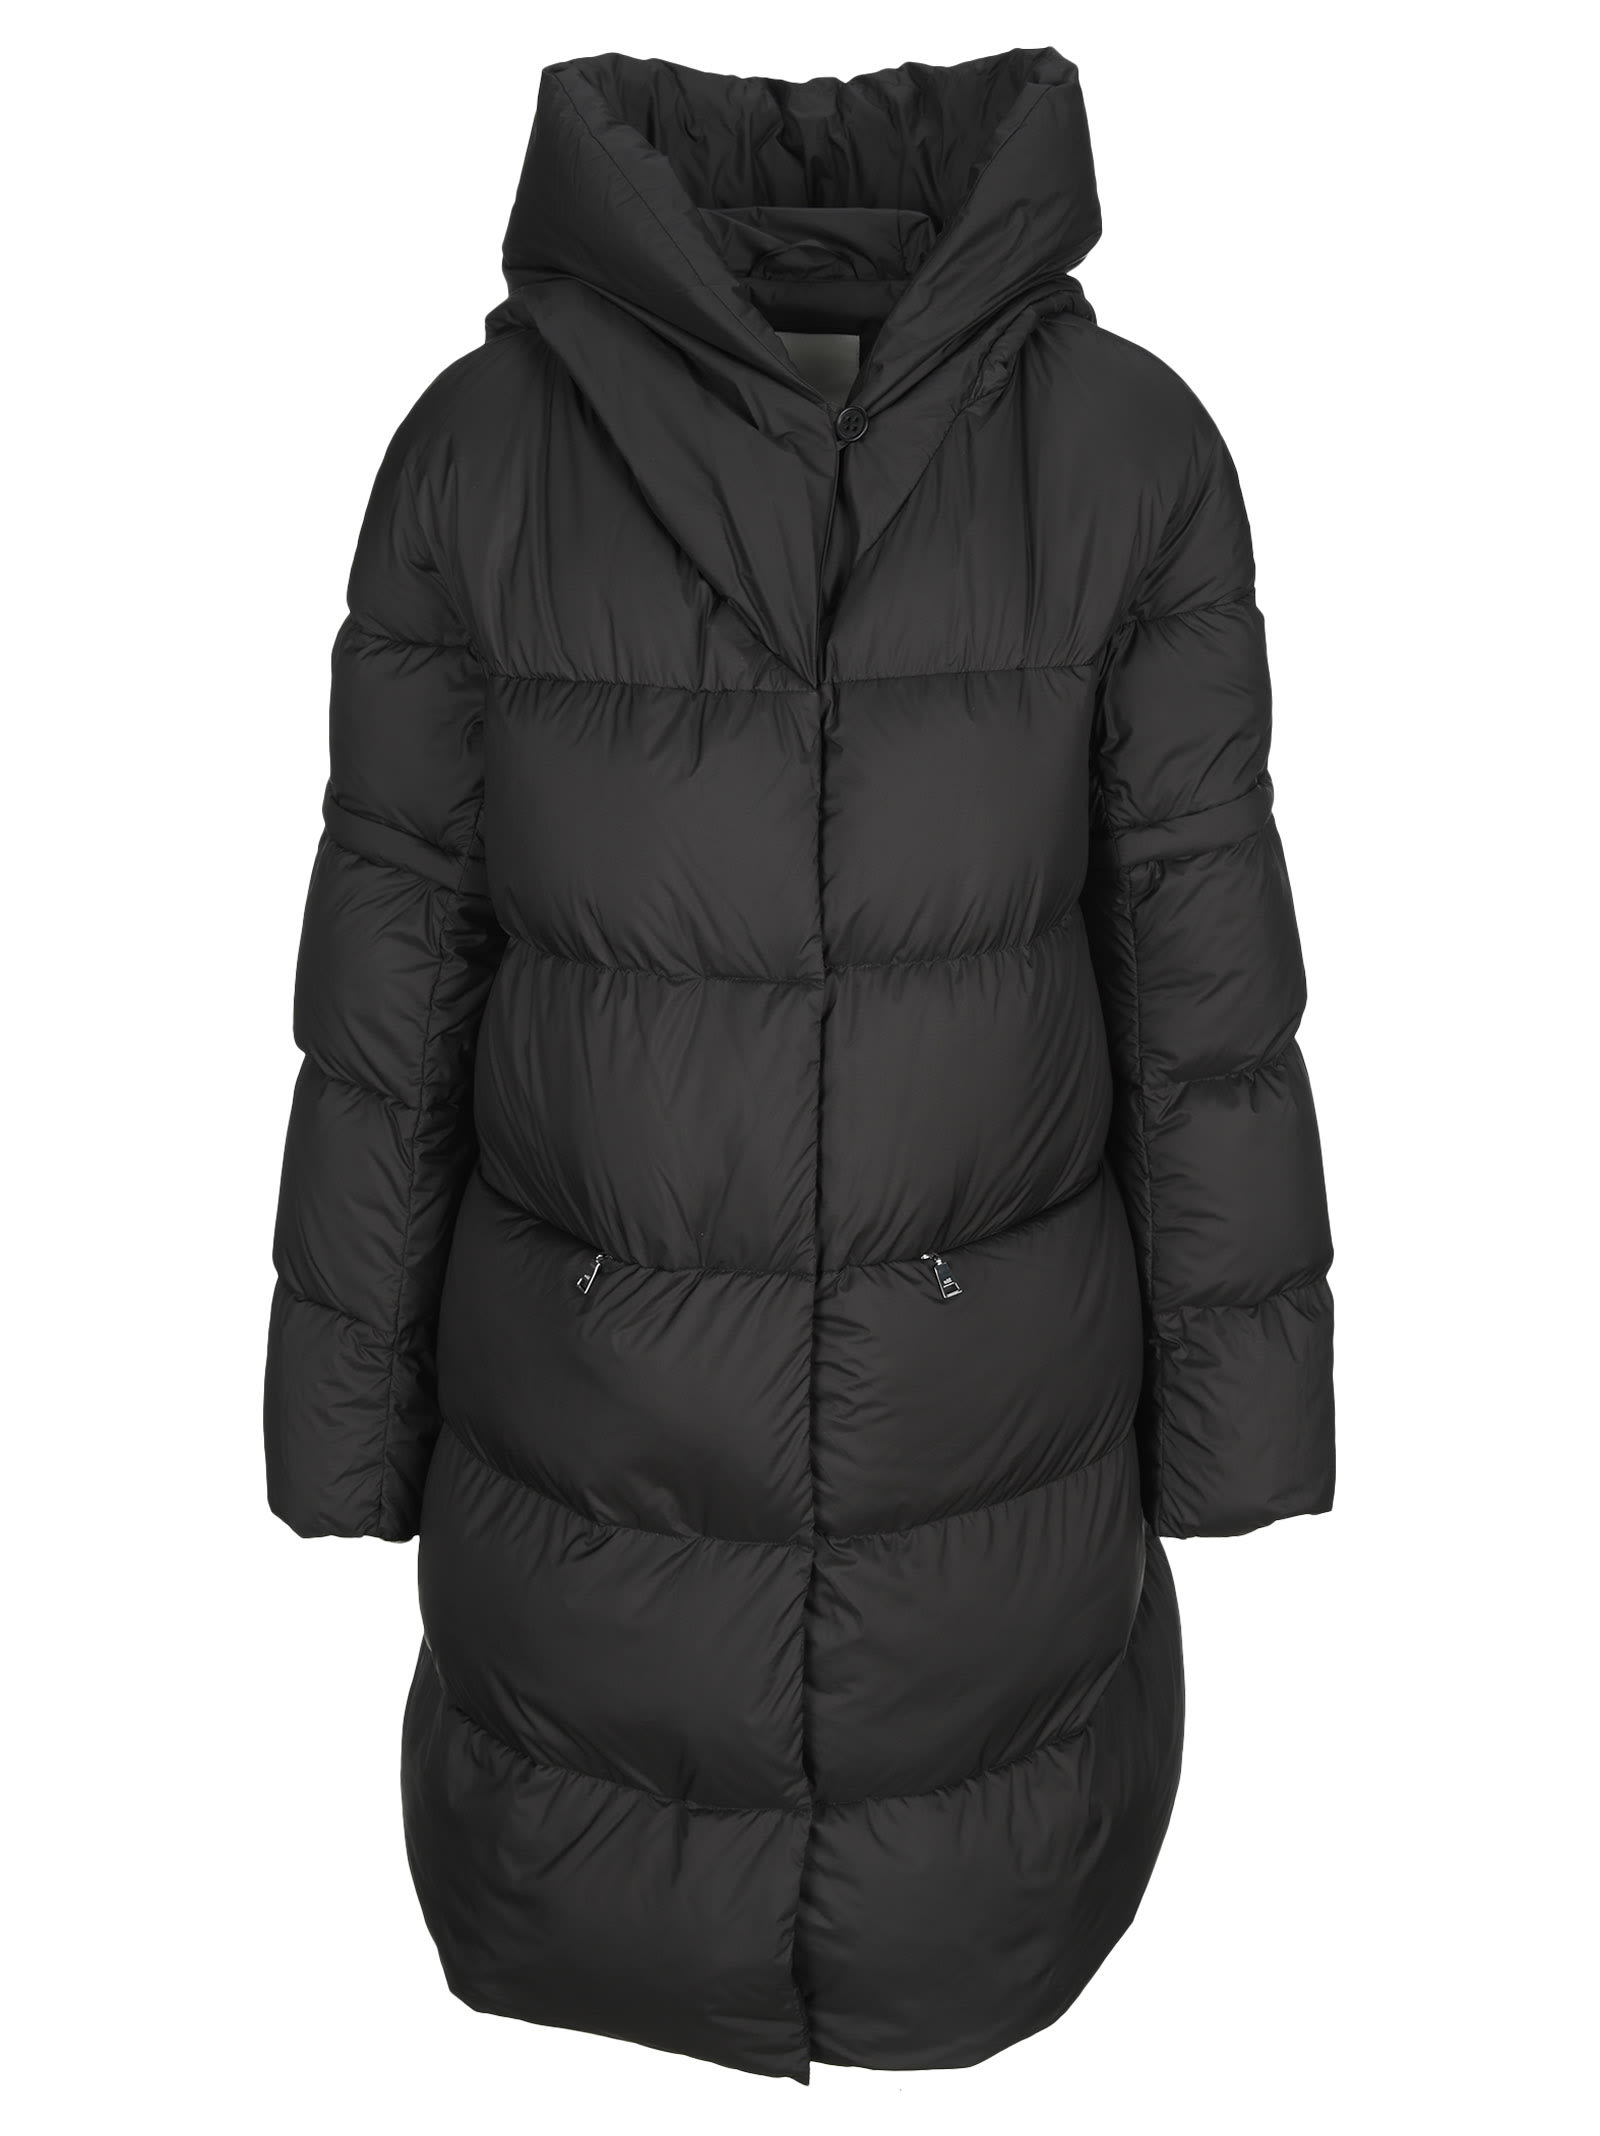 Hooded Long Down Coat With Detachable Sleeves